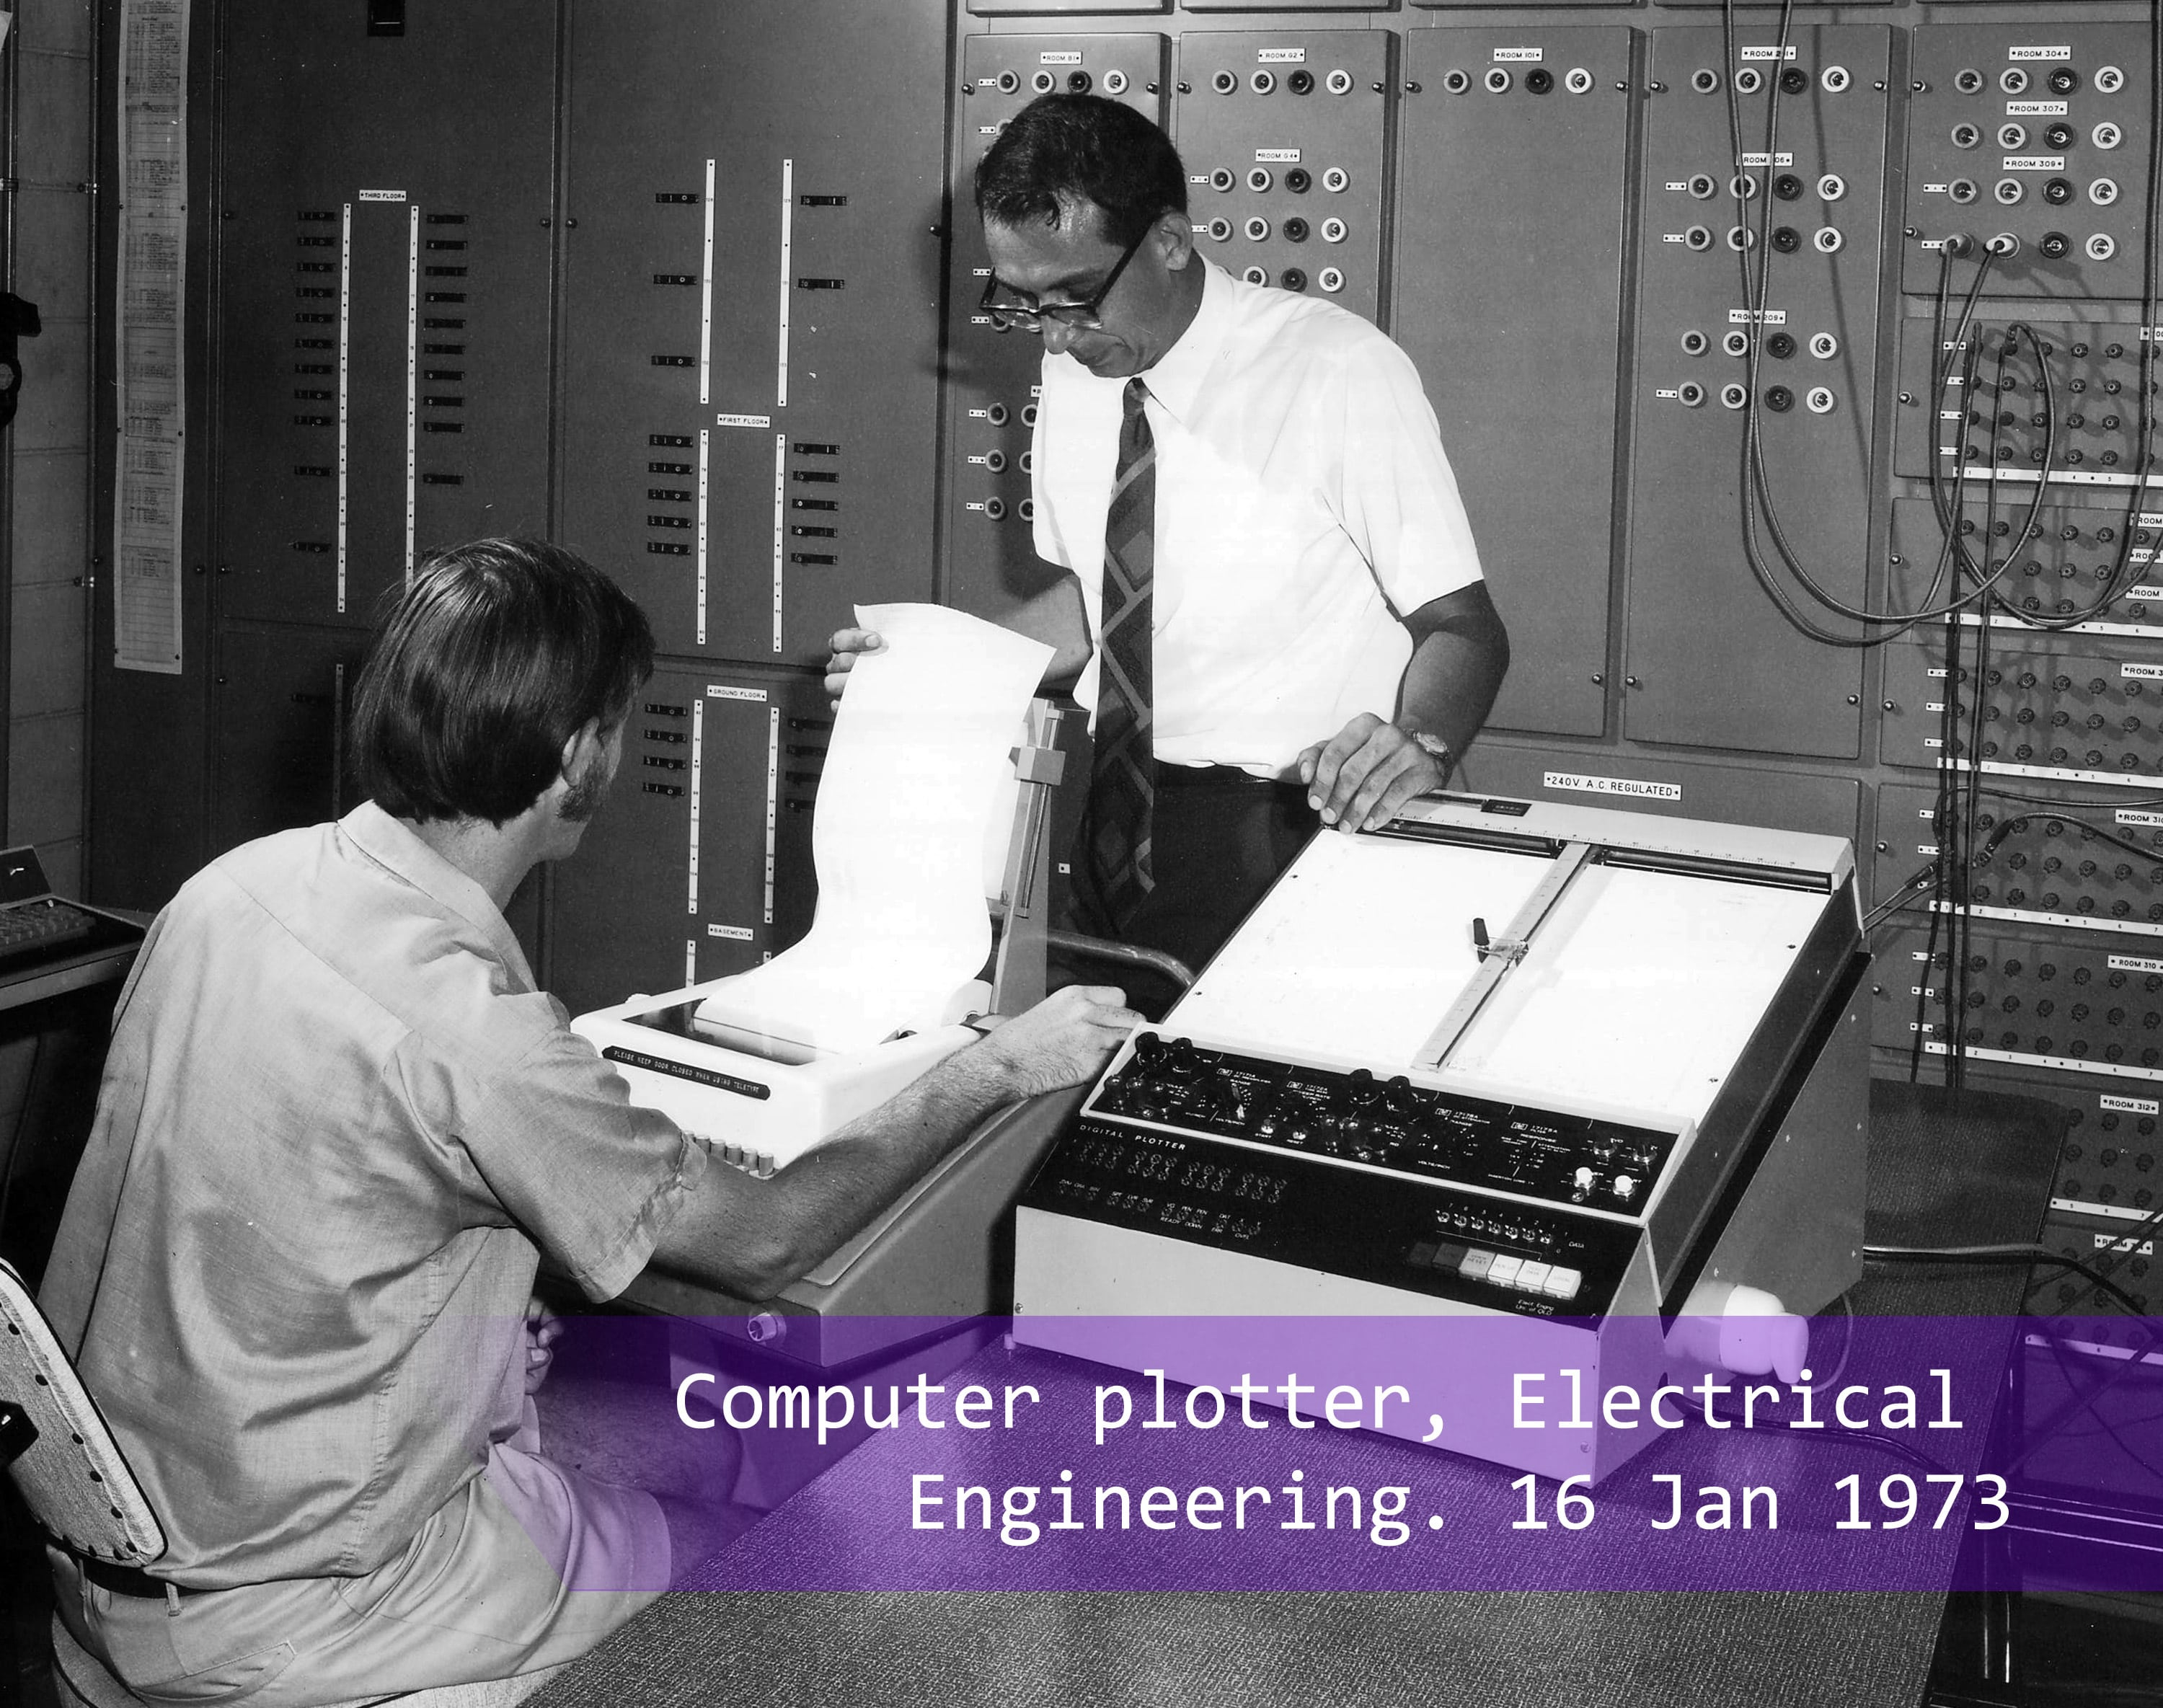 A computer plotter in Electrical Engineering in 1973